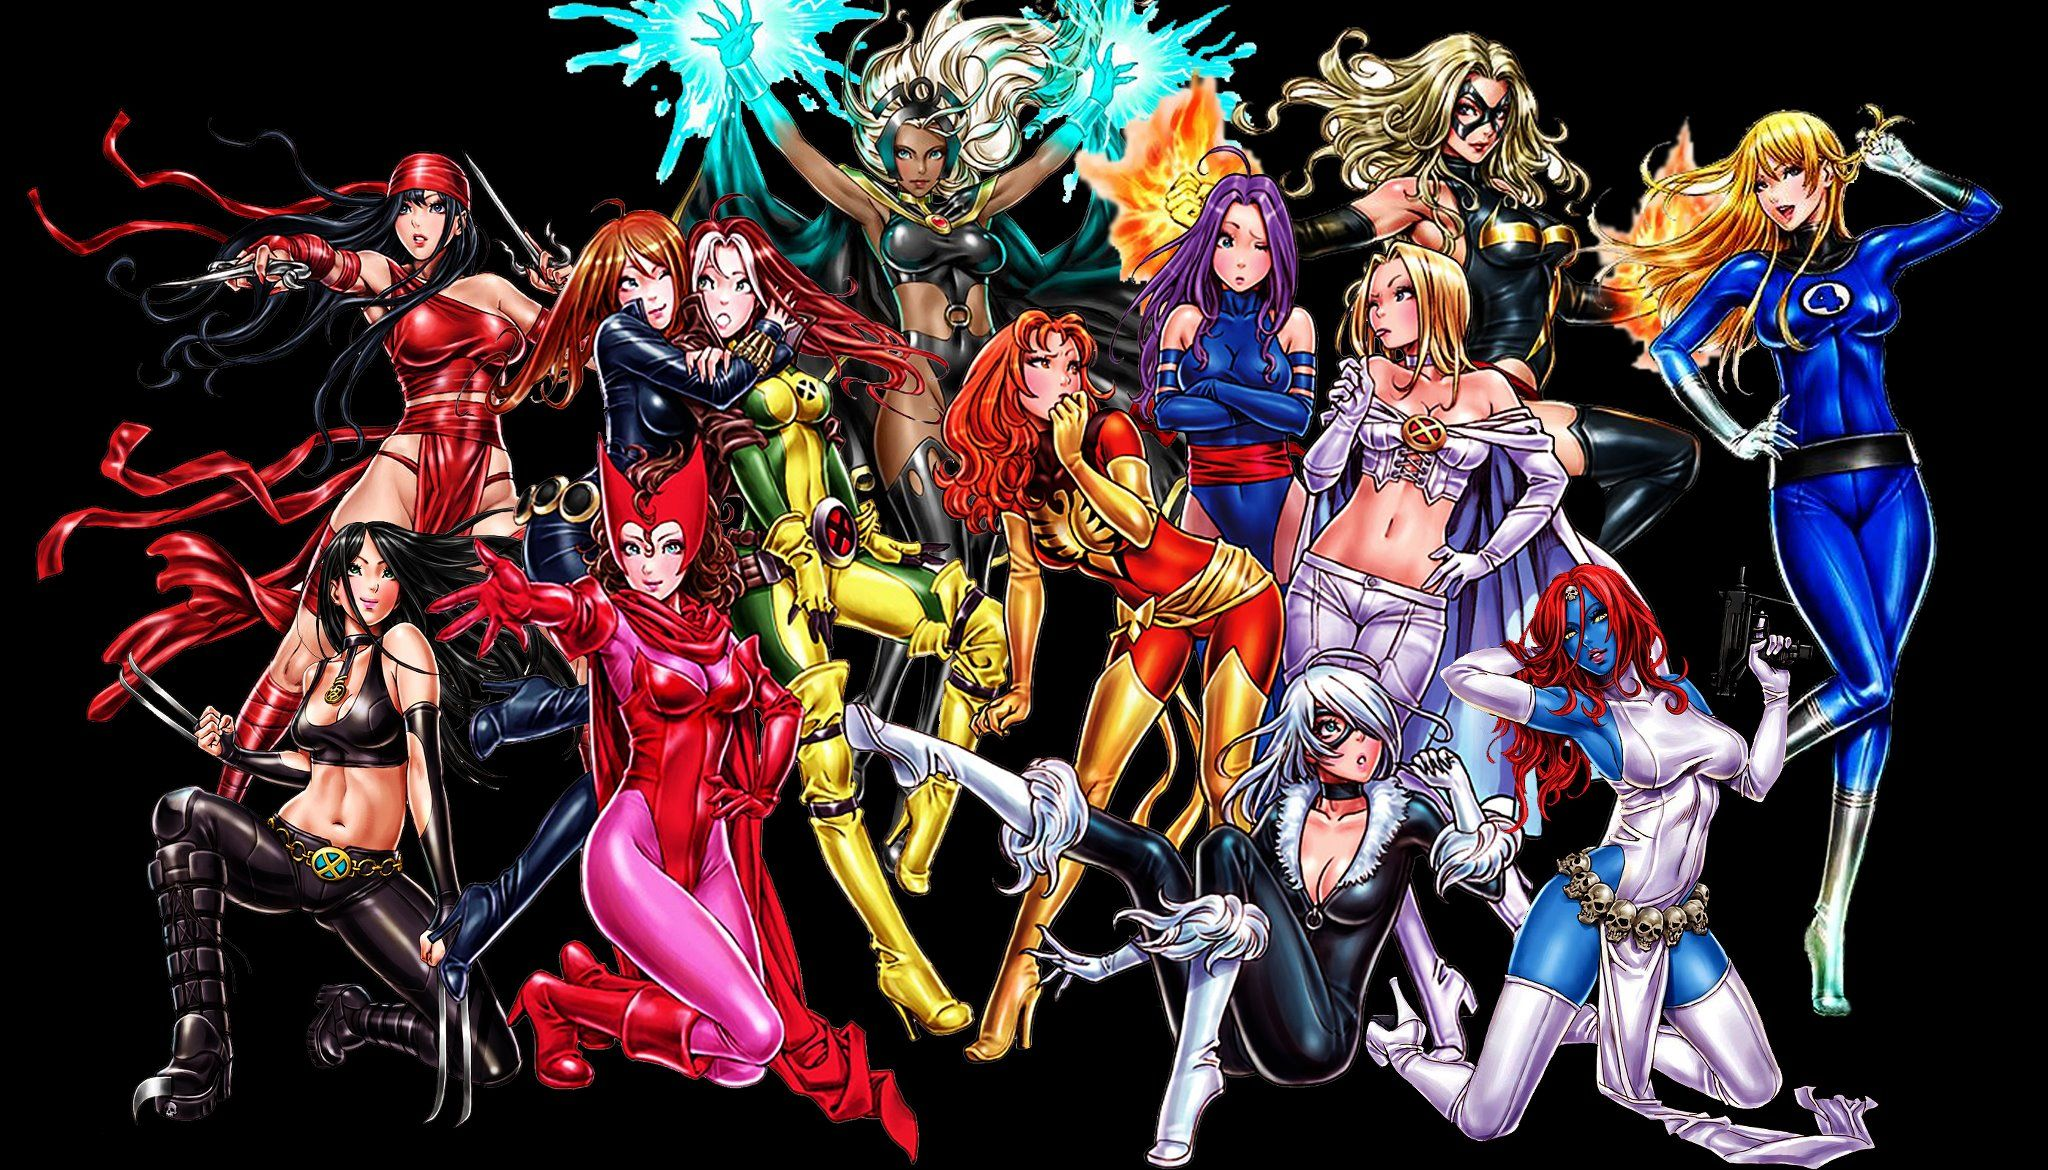 Anime Characters Vs Superheroes : Anime style ladies of marvel and dc by shunya yamashita